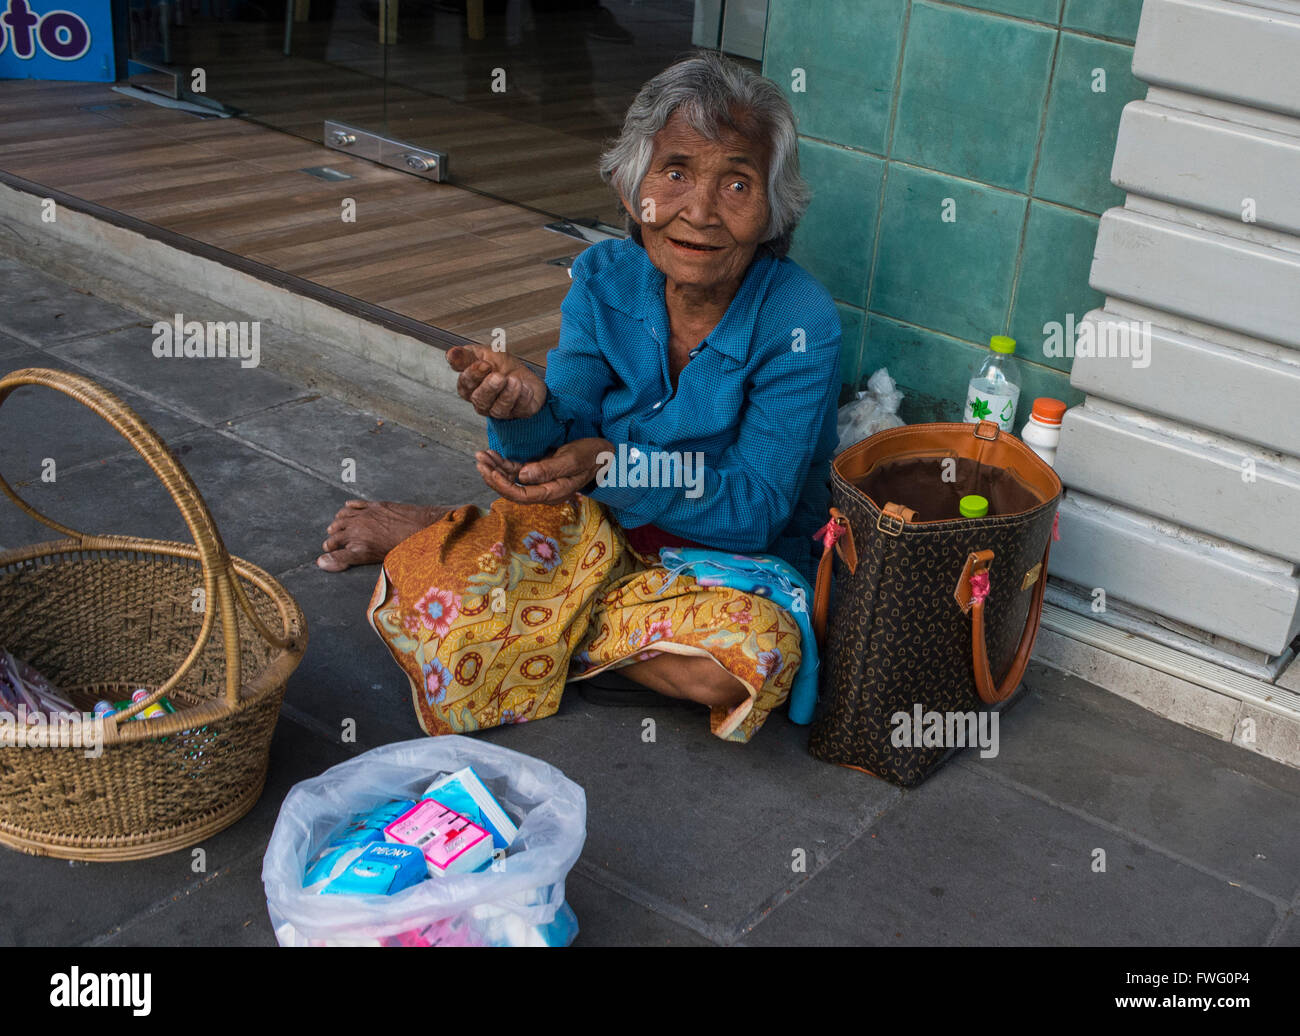 An elderly woman lives by selling small items and begging on the streets of Bangkok, Thailand - Stock Image